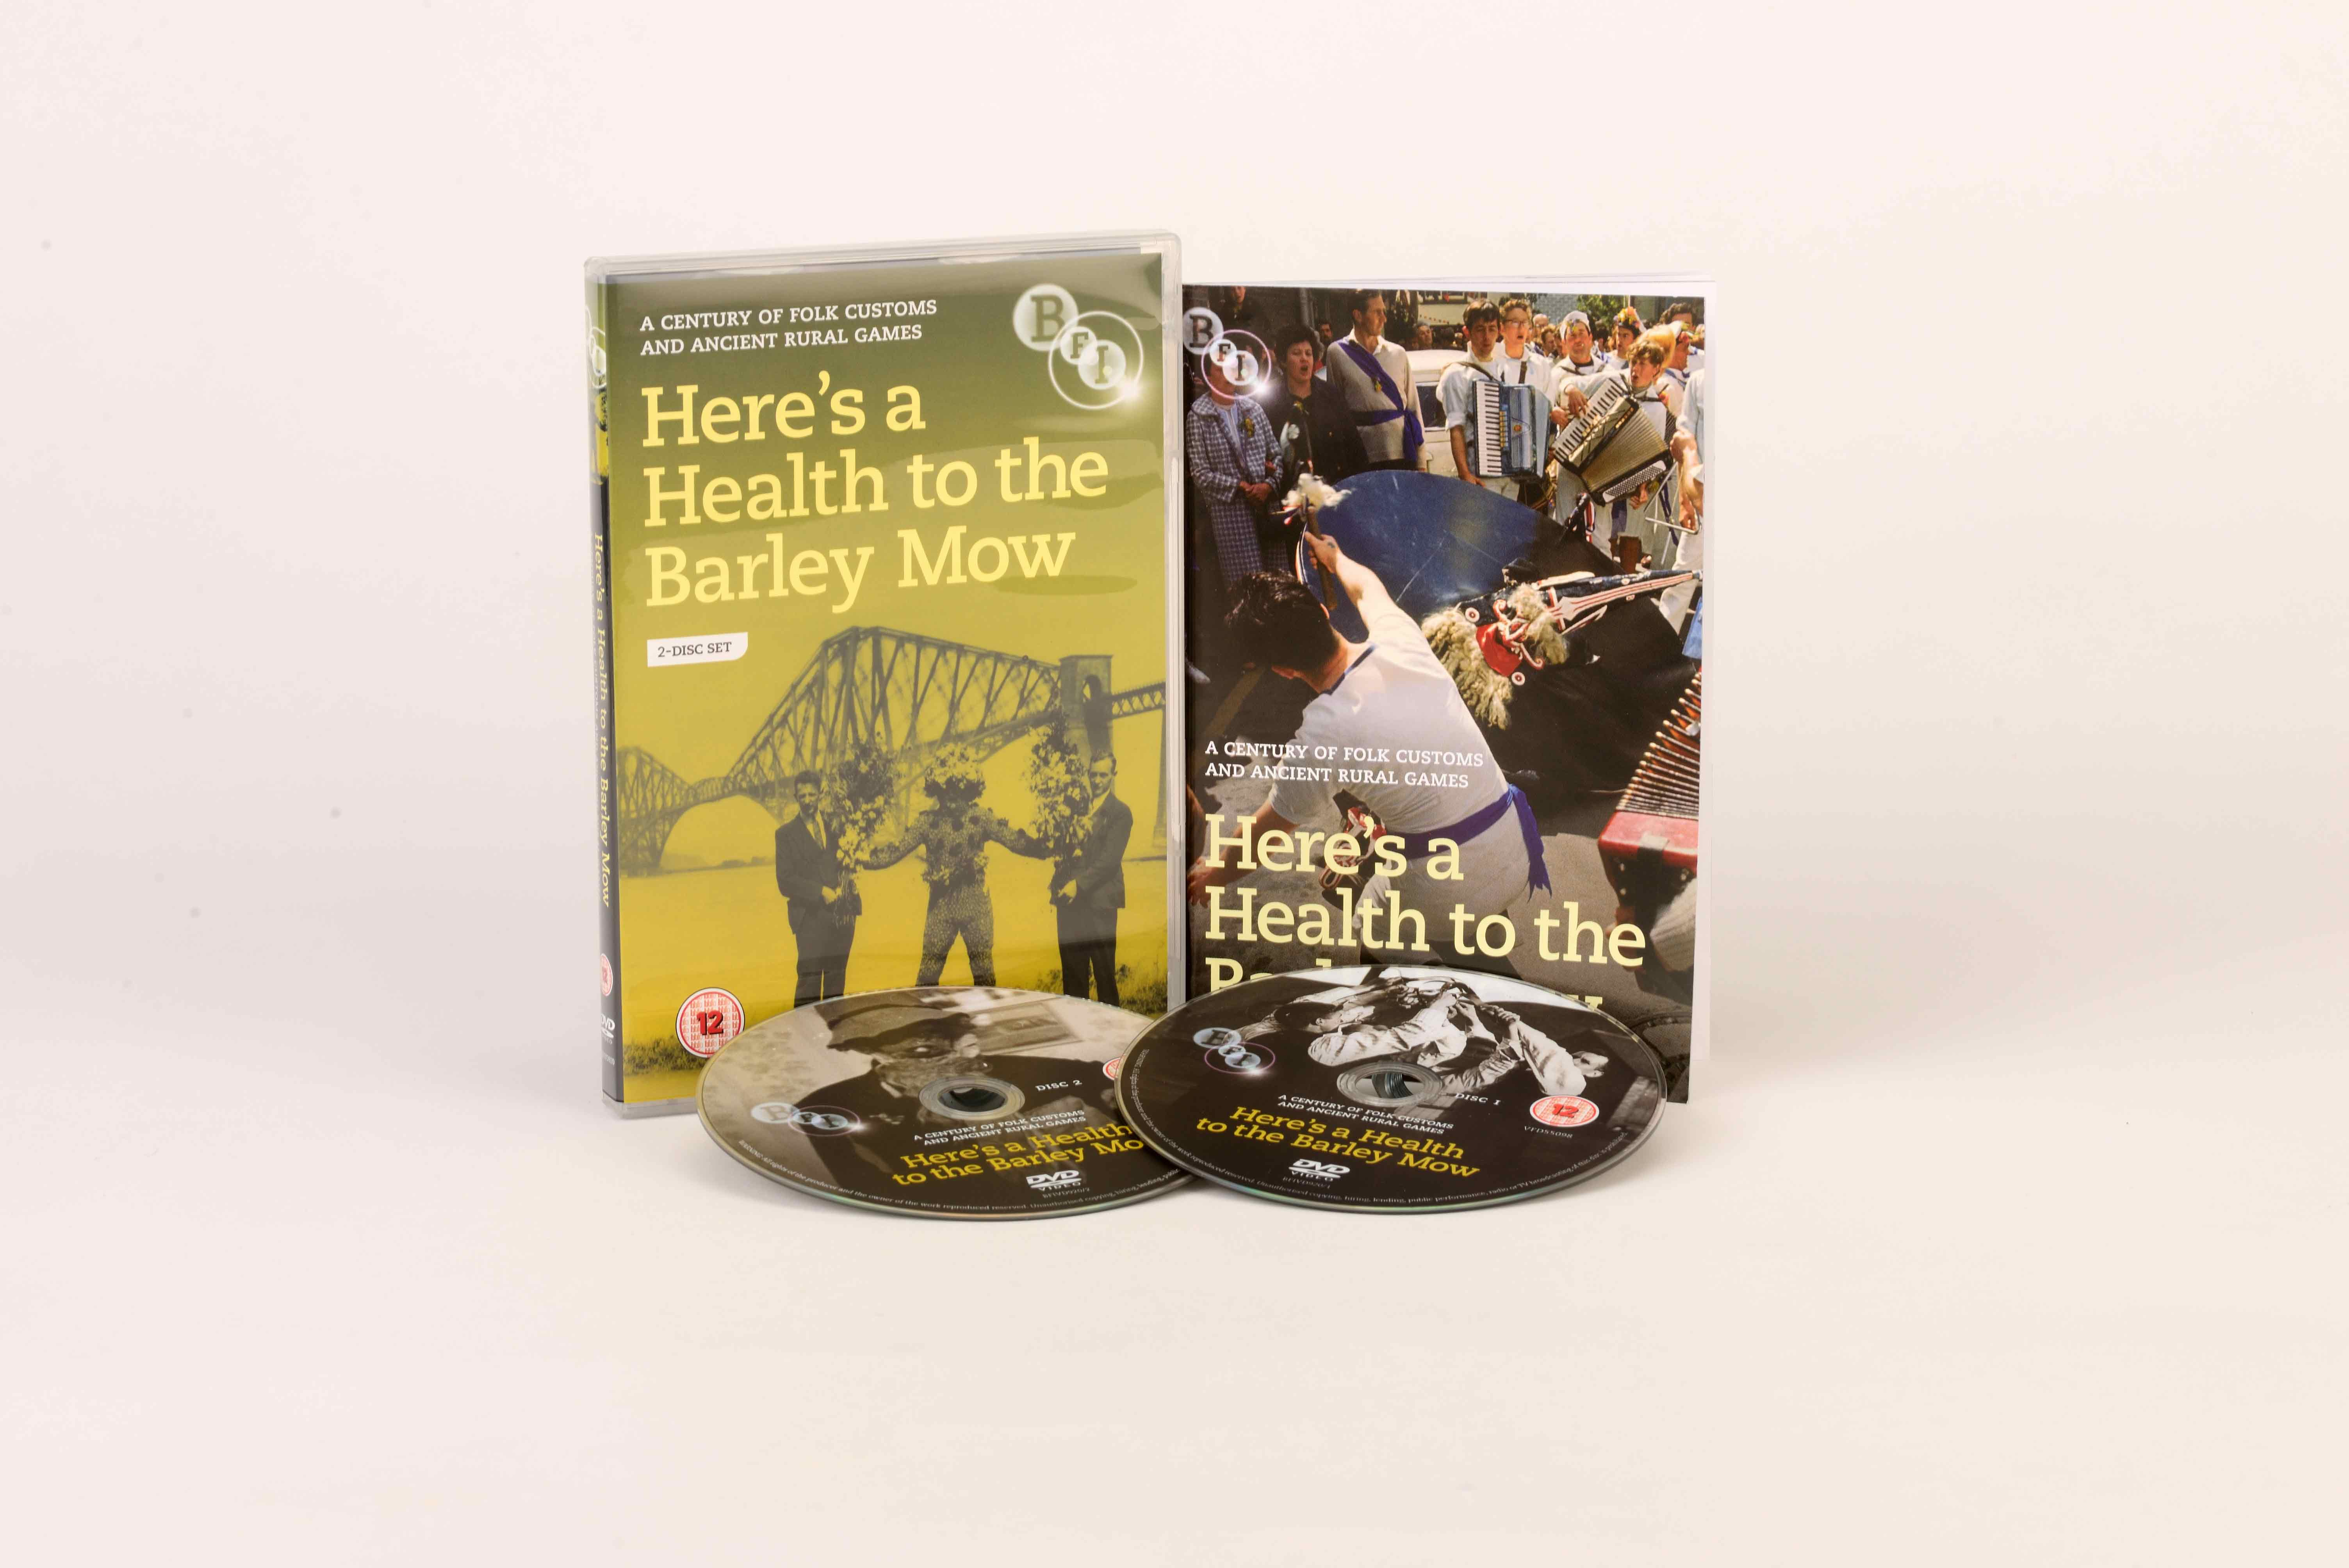 Buy Here's a Health to the Barley Mow (2-DVD set)